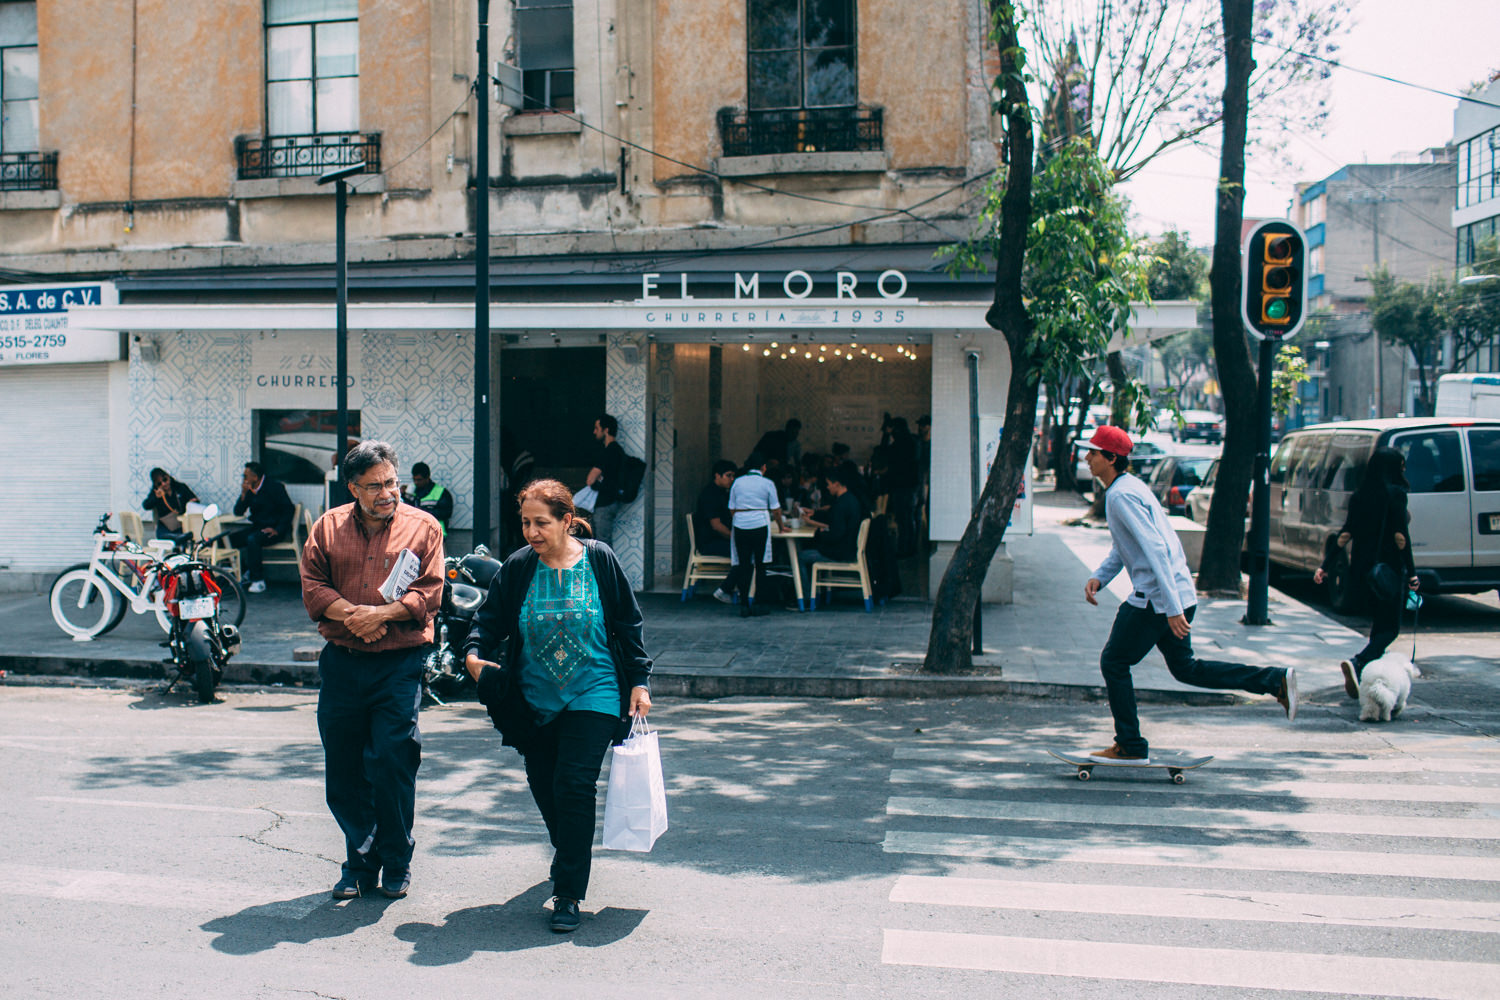 Roma Norte is a trendy neighbourhood full of restaurants, hipster-run coffee shops, bars, parks, markets and shops buoyed by boundless artistic entrepreneurialism.